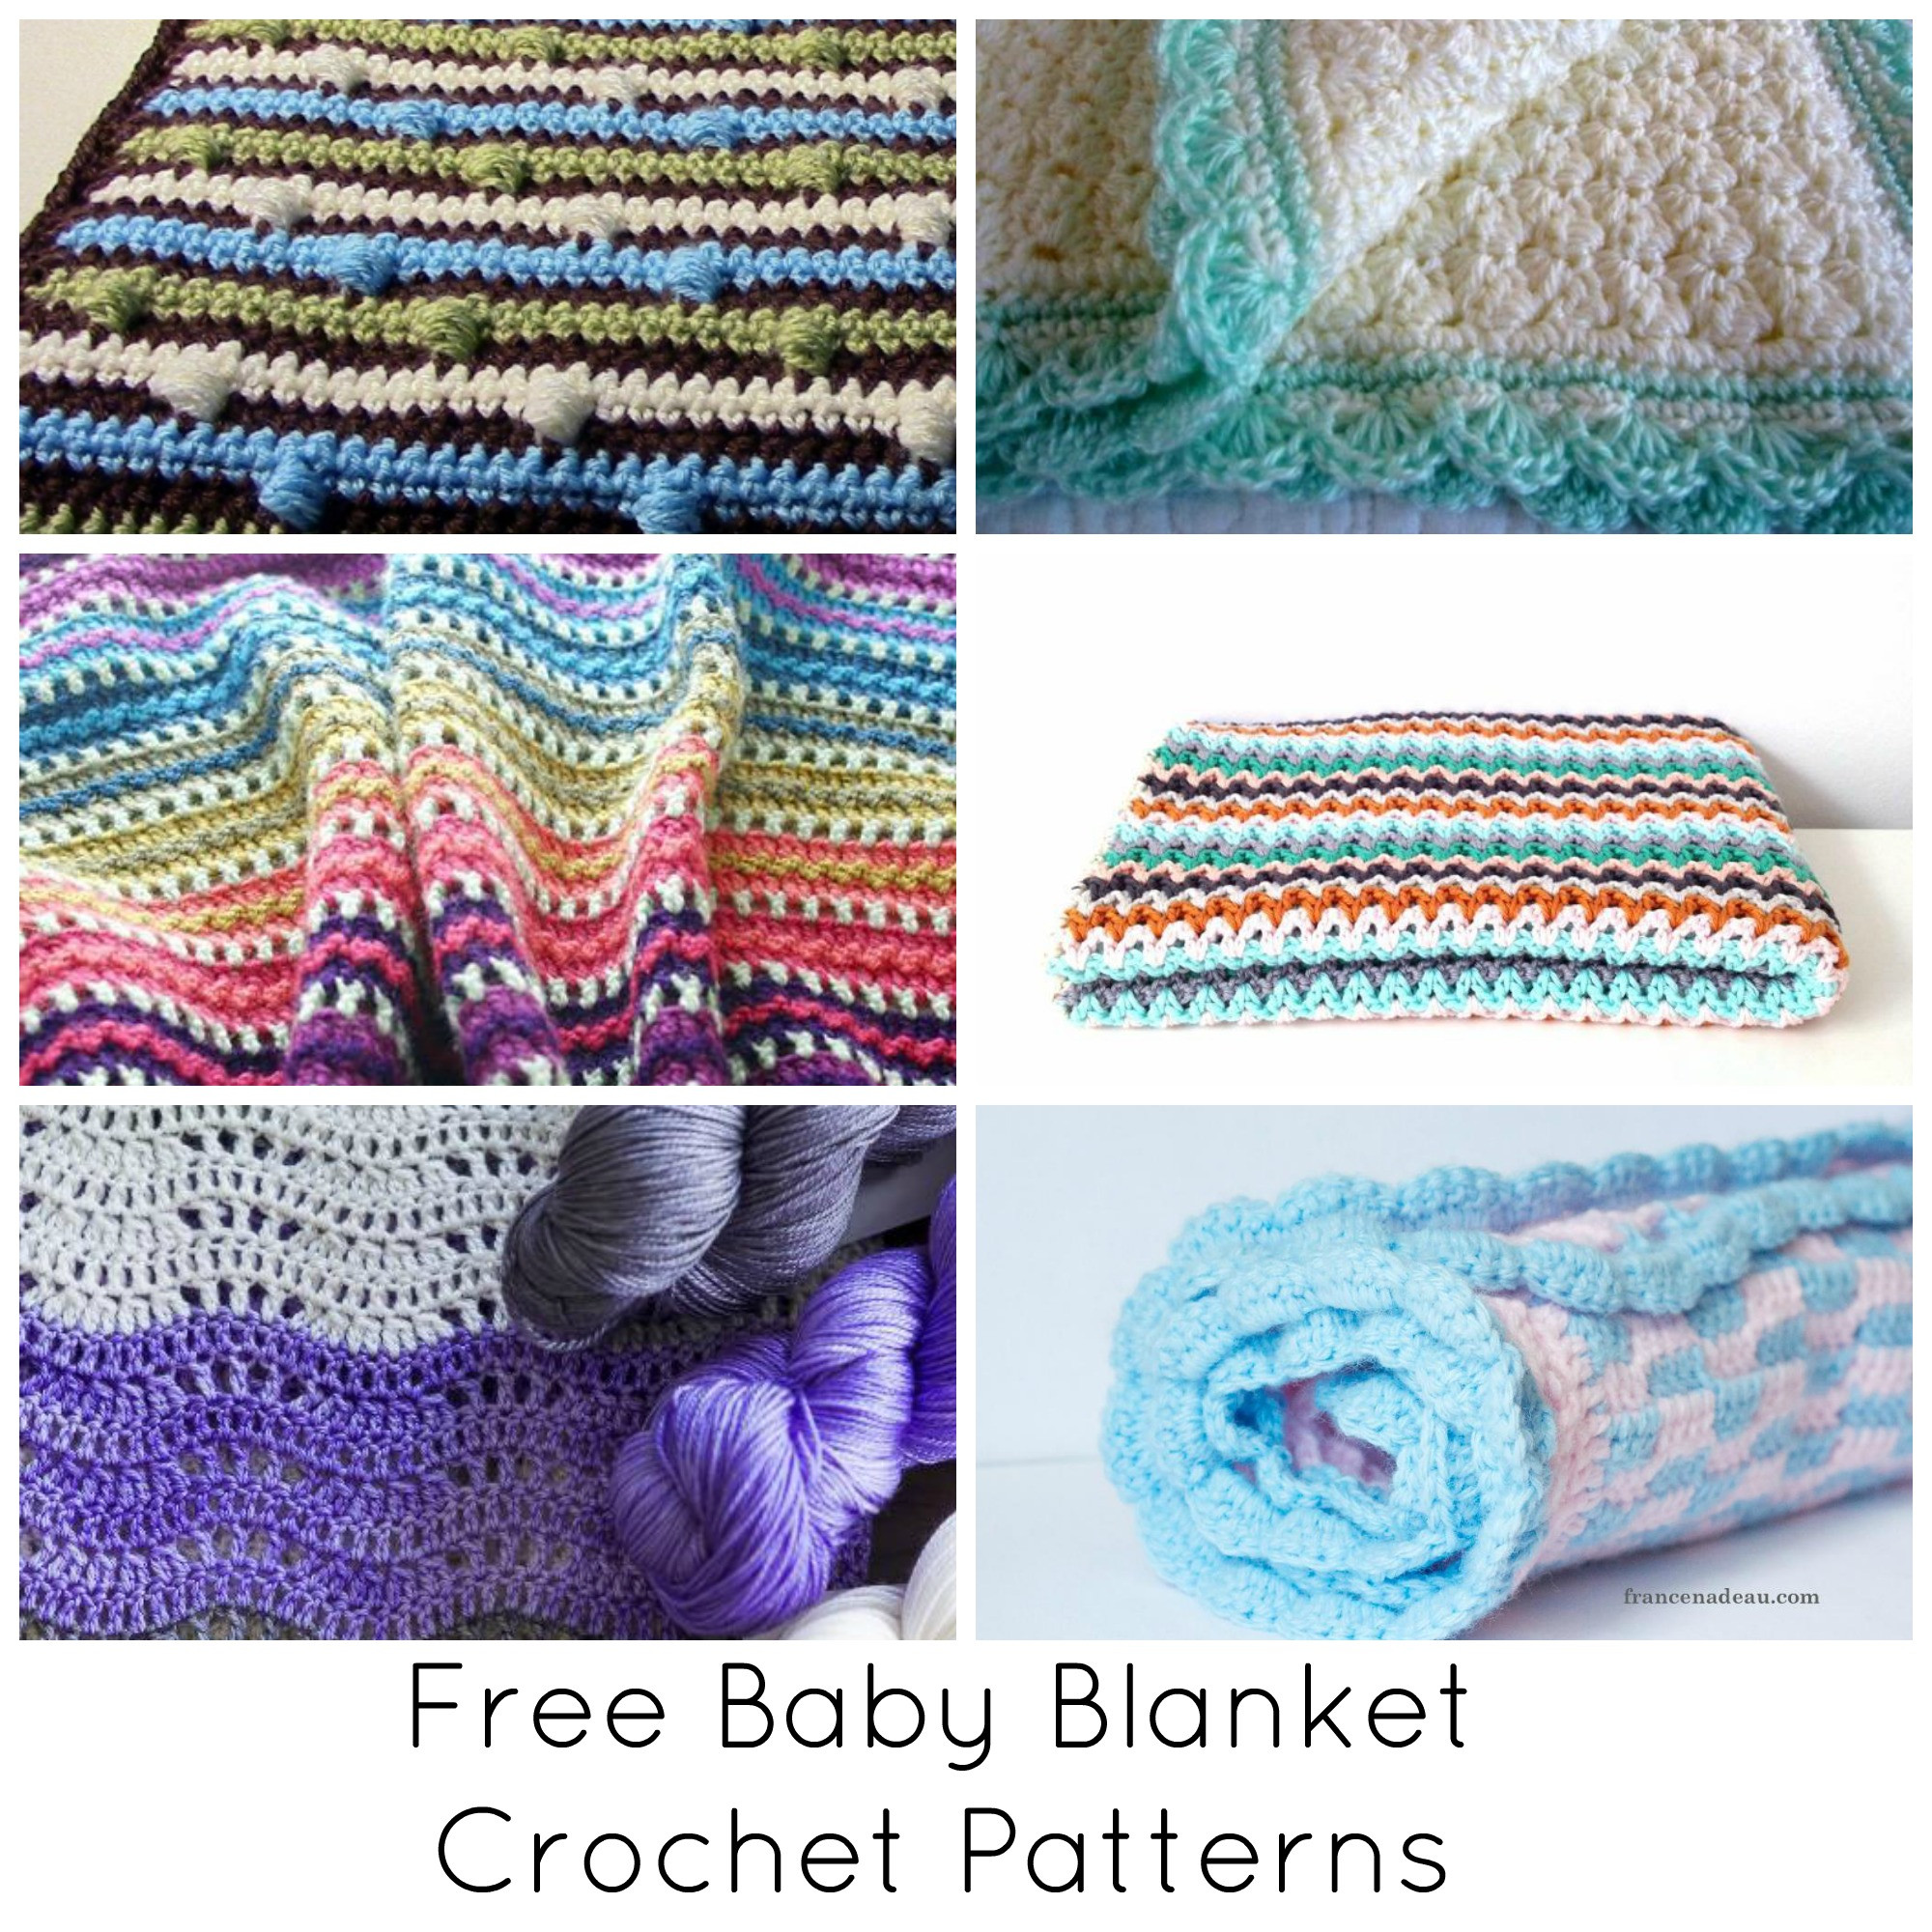 Free Baby Blanket Patterns Awesome 14 Free Crochet Baby Blanket Patterns Of Amazing 49 Images Free Baby Blanket Patterns